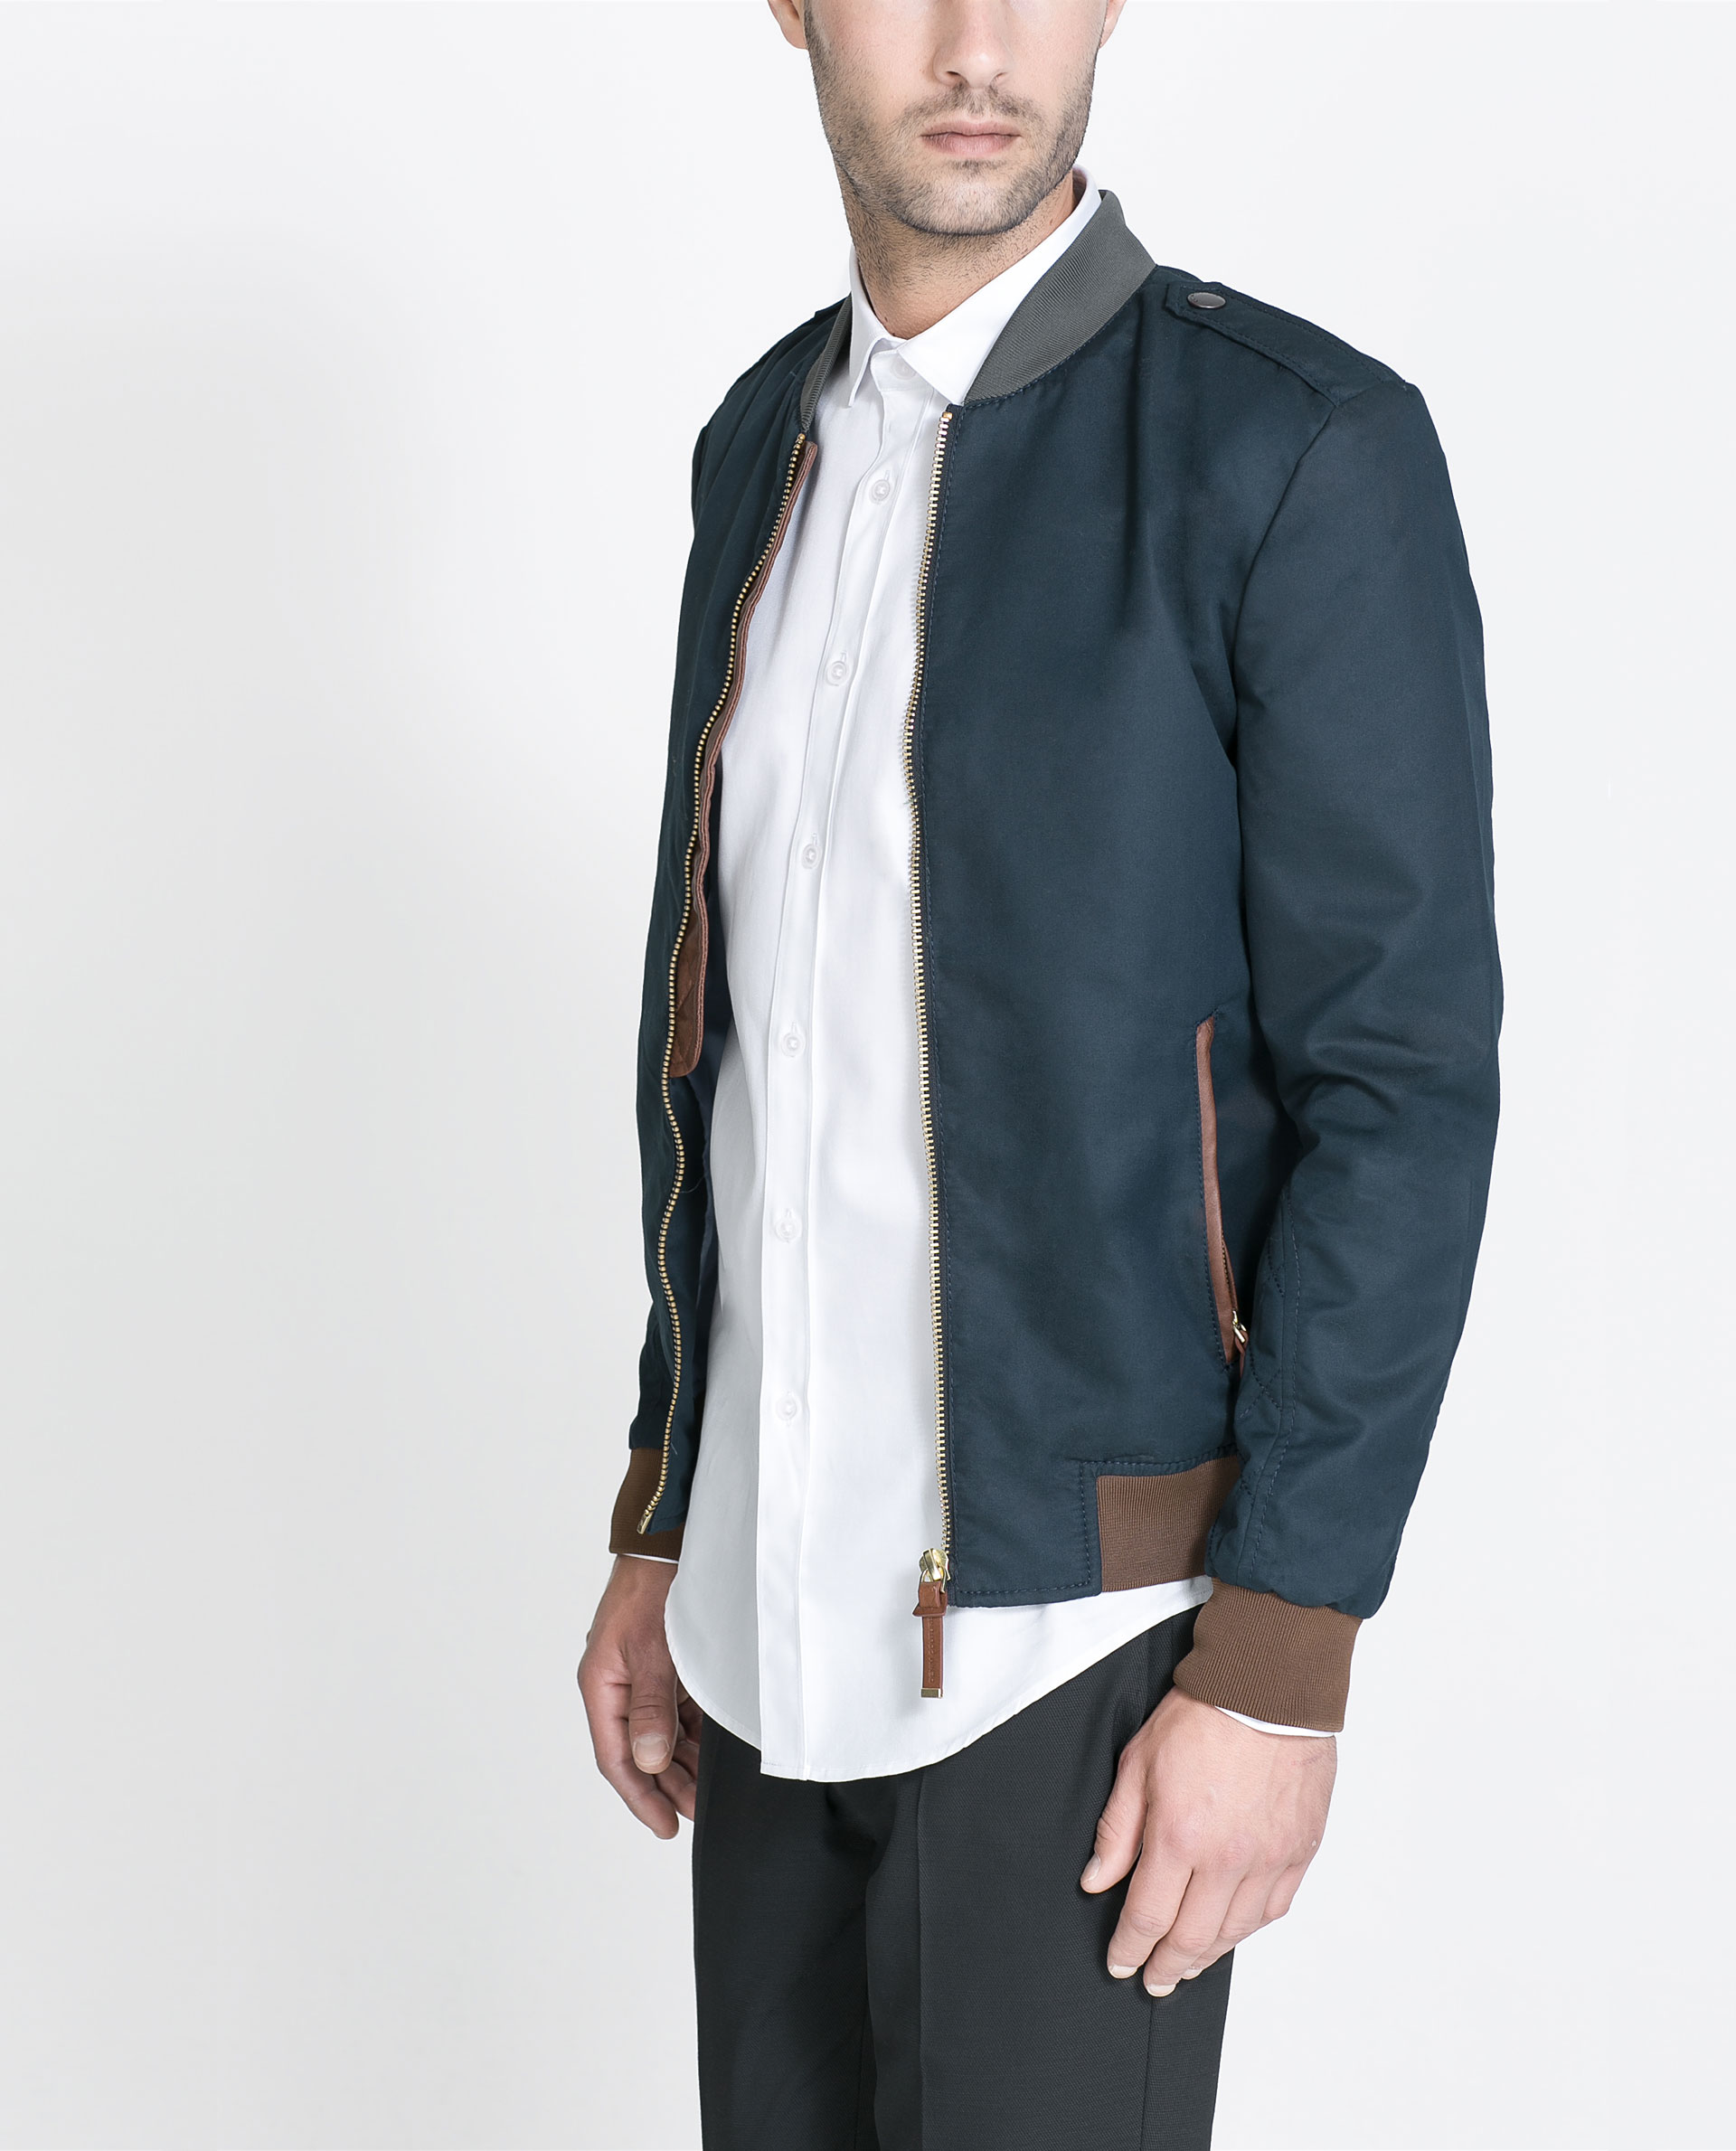 Right from an all-boys road trip to a grand wedding party, they can definitely be your go-to pieces of clothing wherever you go. And we understand your dire need for the same, and offer you a crazy variety of jackets to pick out the best one for your wardrobe.